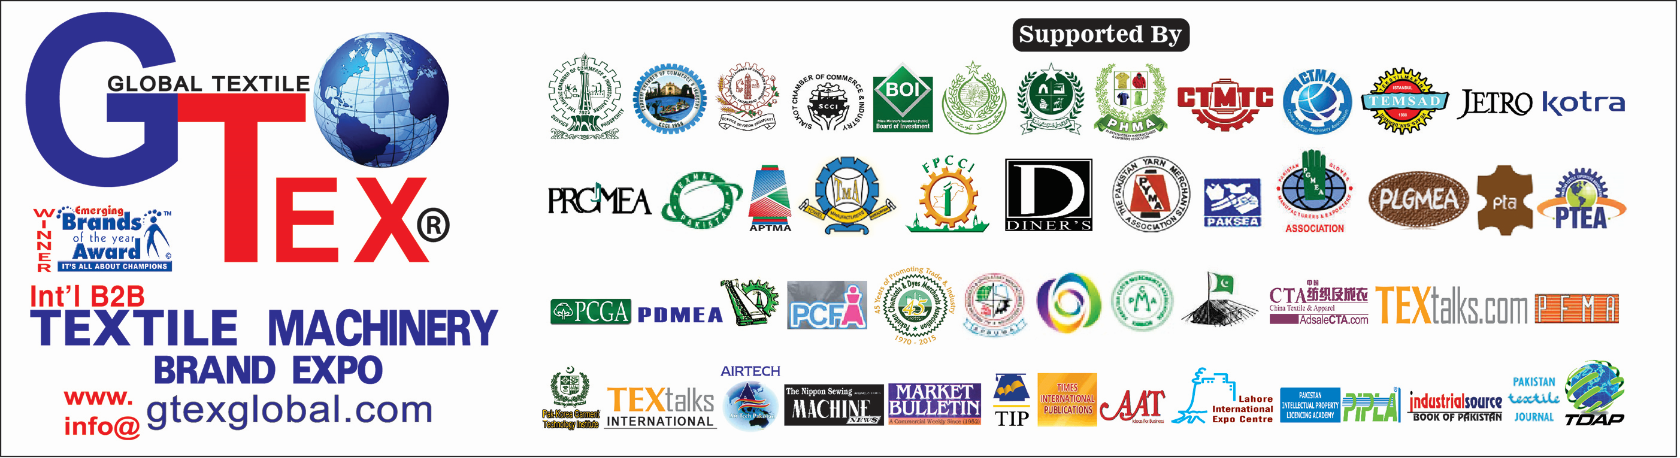 Gtex Textile Machine Exhibition Brands Logo